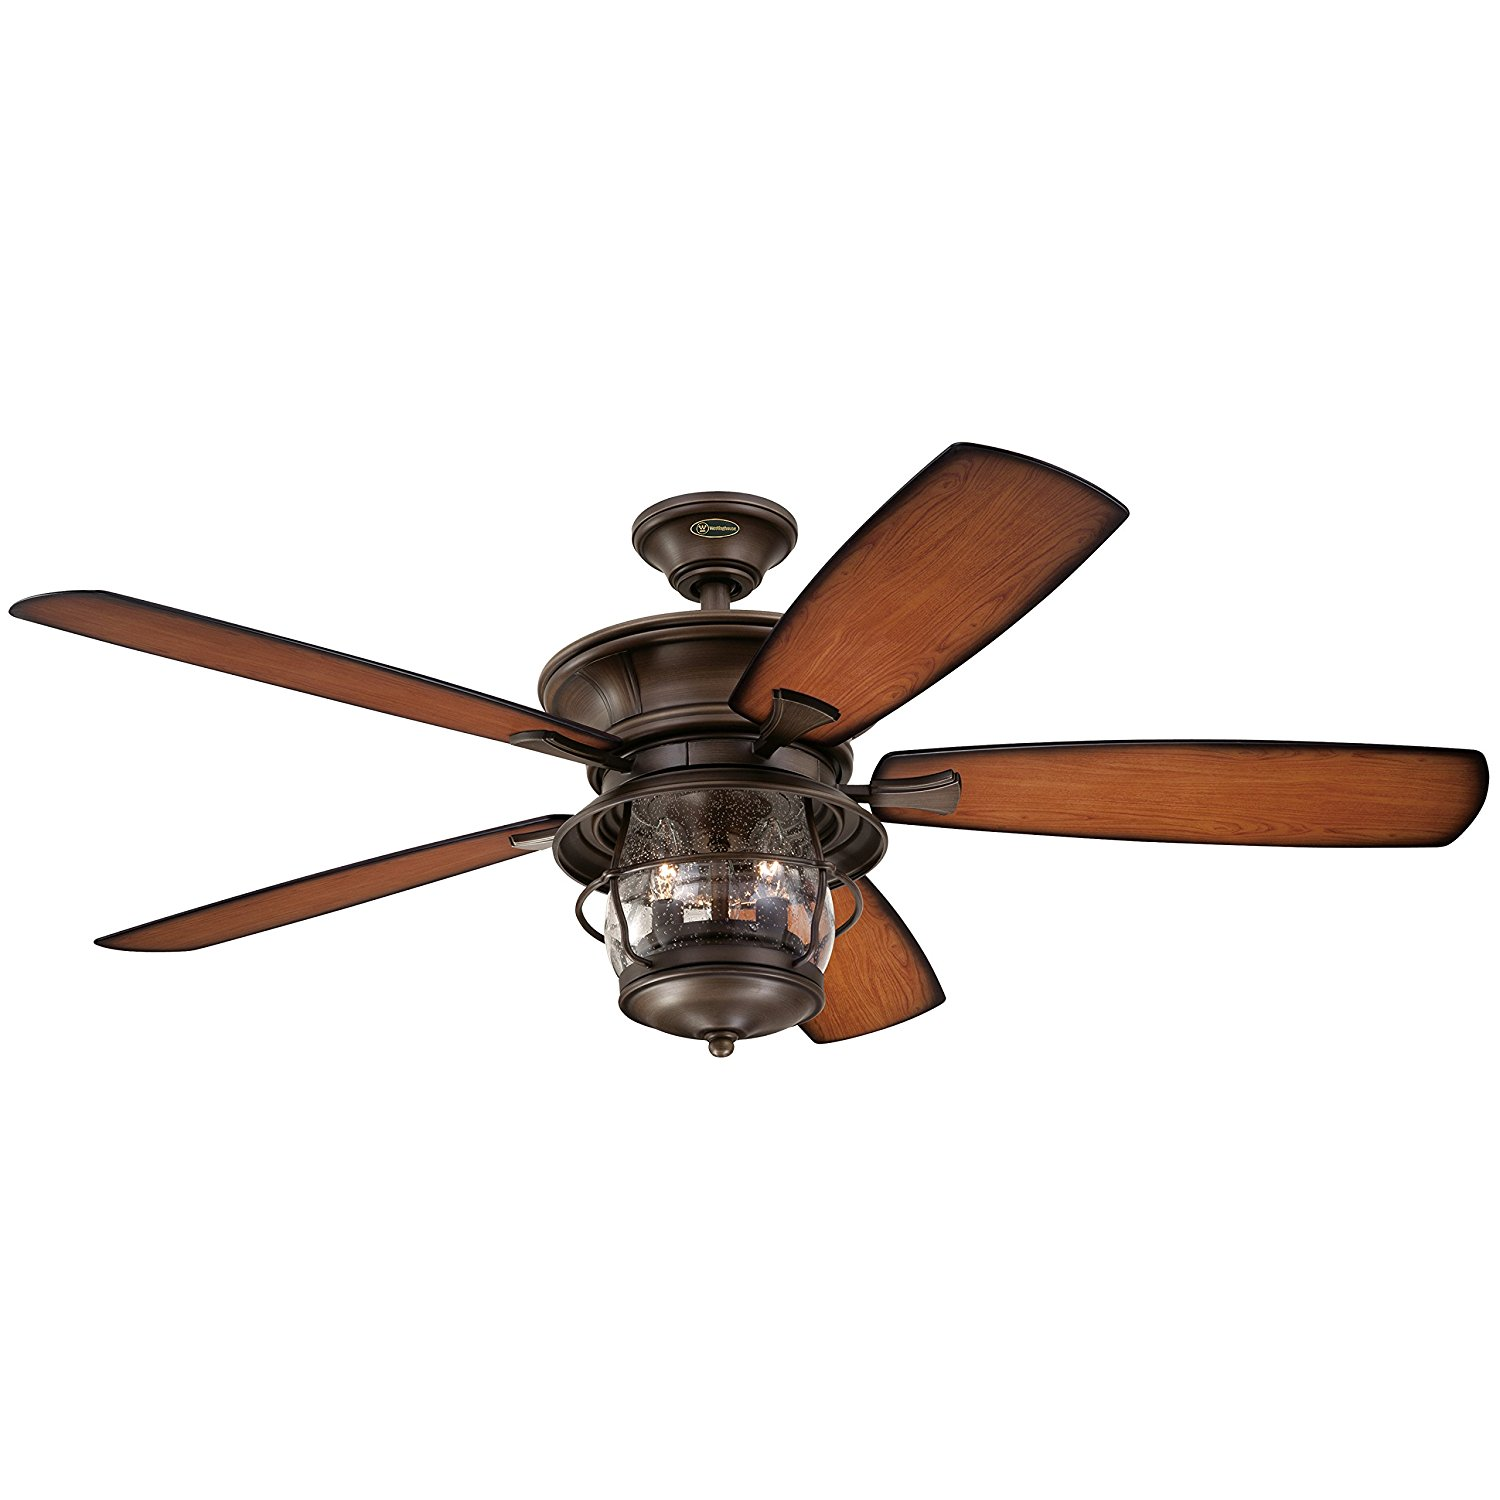 Rustic Ceiling Fan Review – A Classic Touch